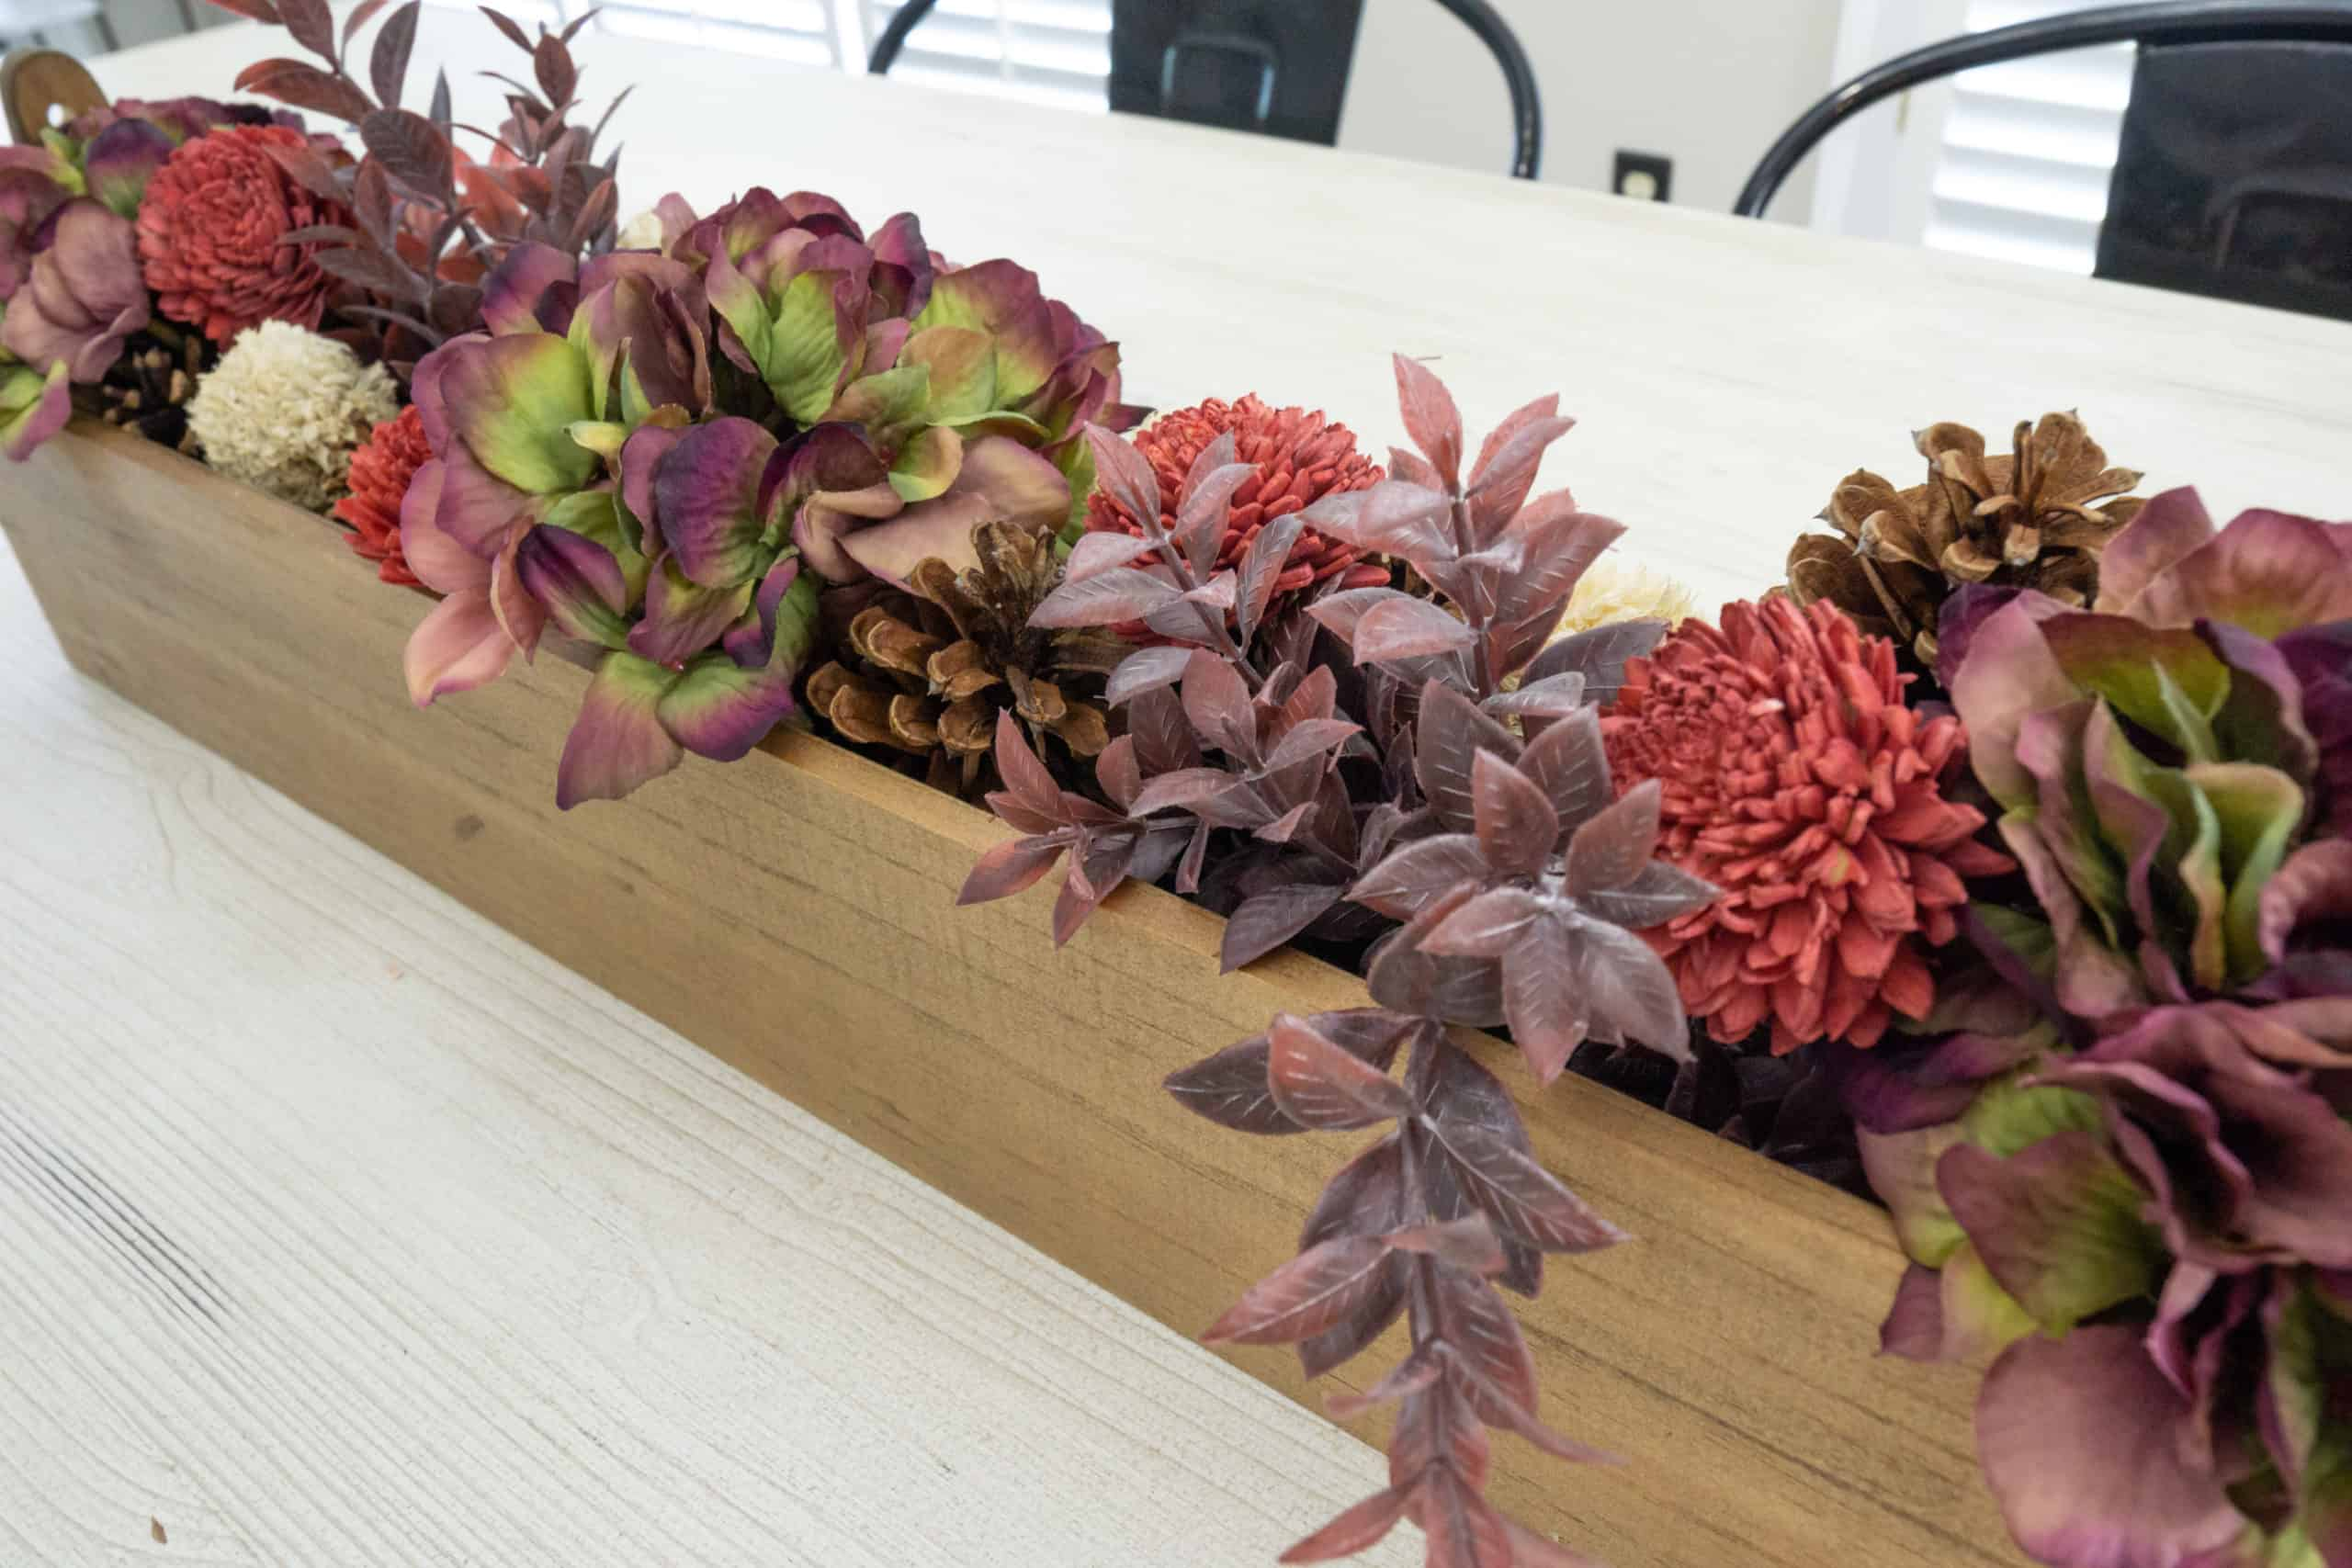 Here are 3 easy fall centerpieces to help simplify your fall decorating.